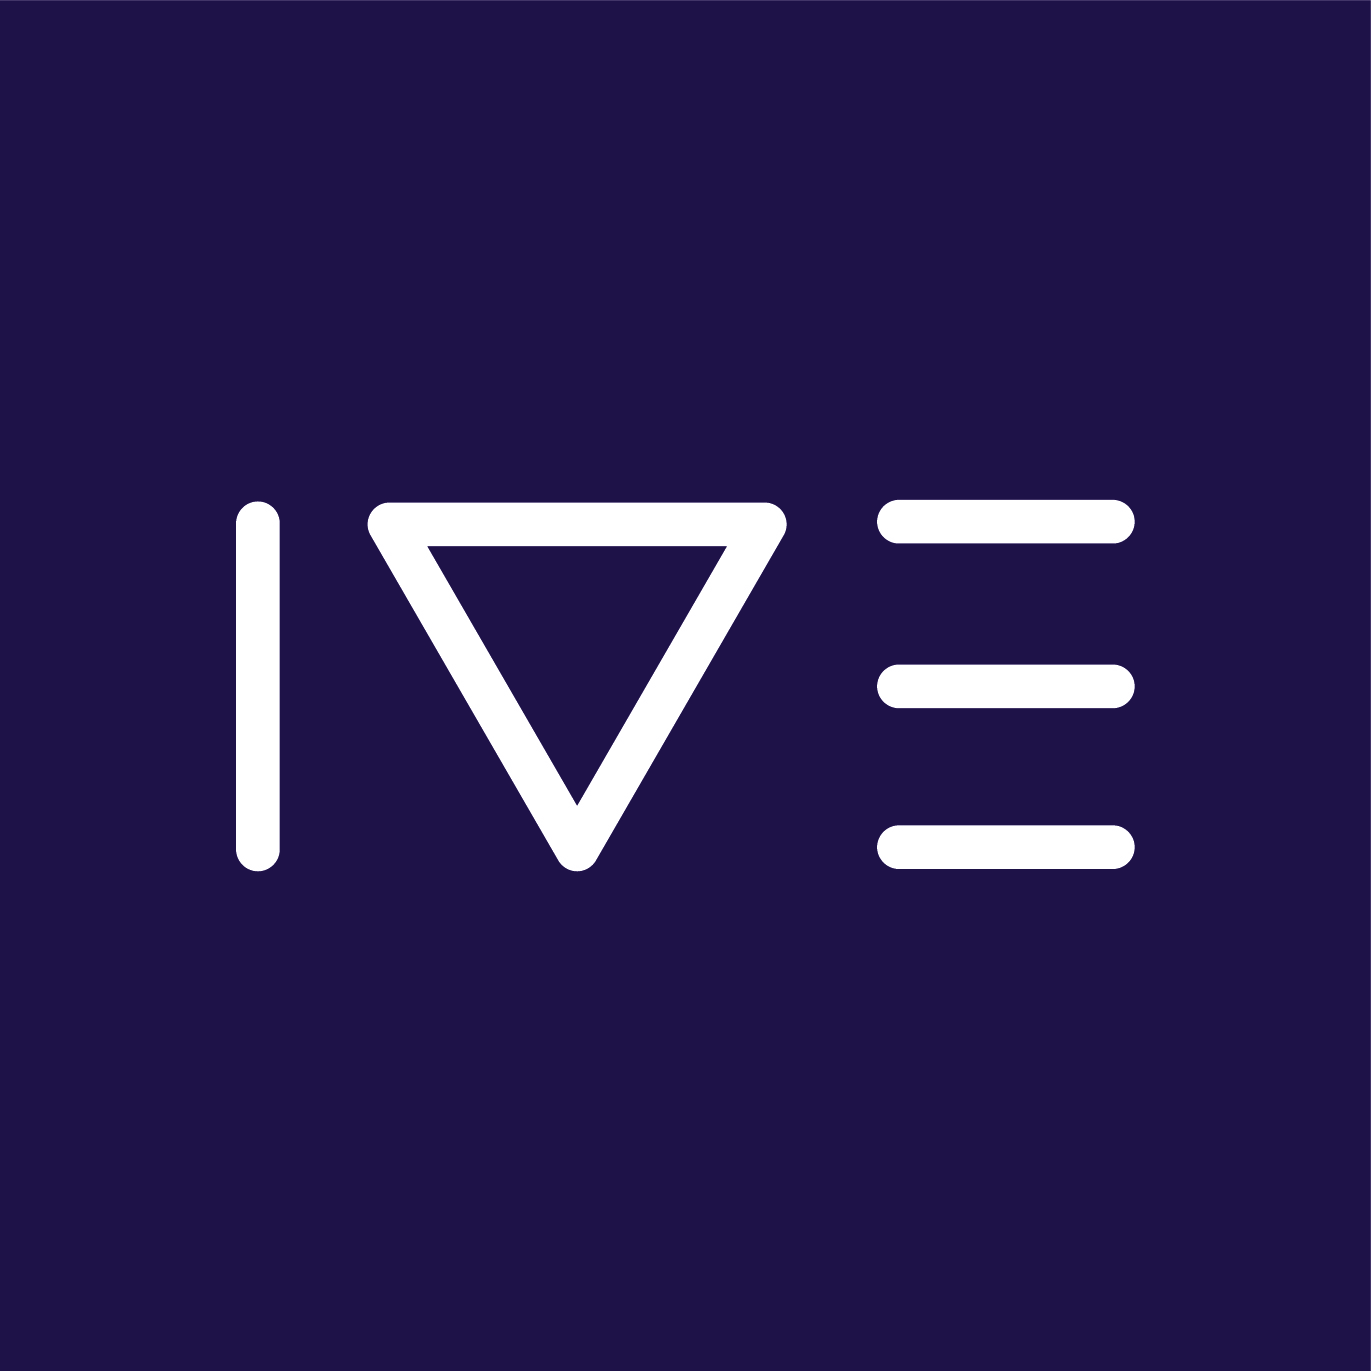 A company logo with three shapes which look like the letters i, v and e.